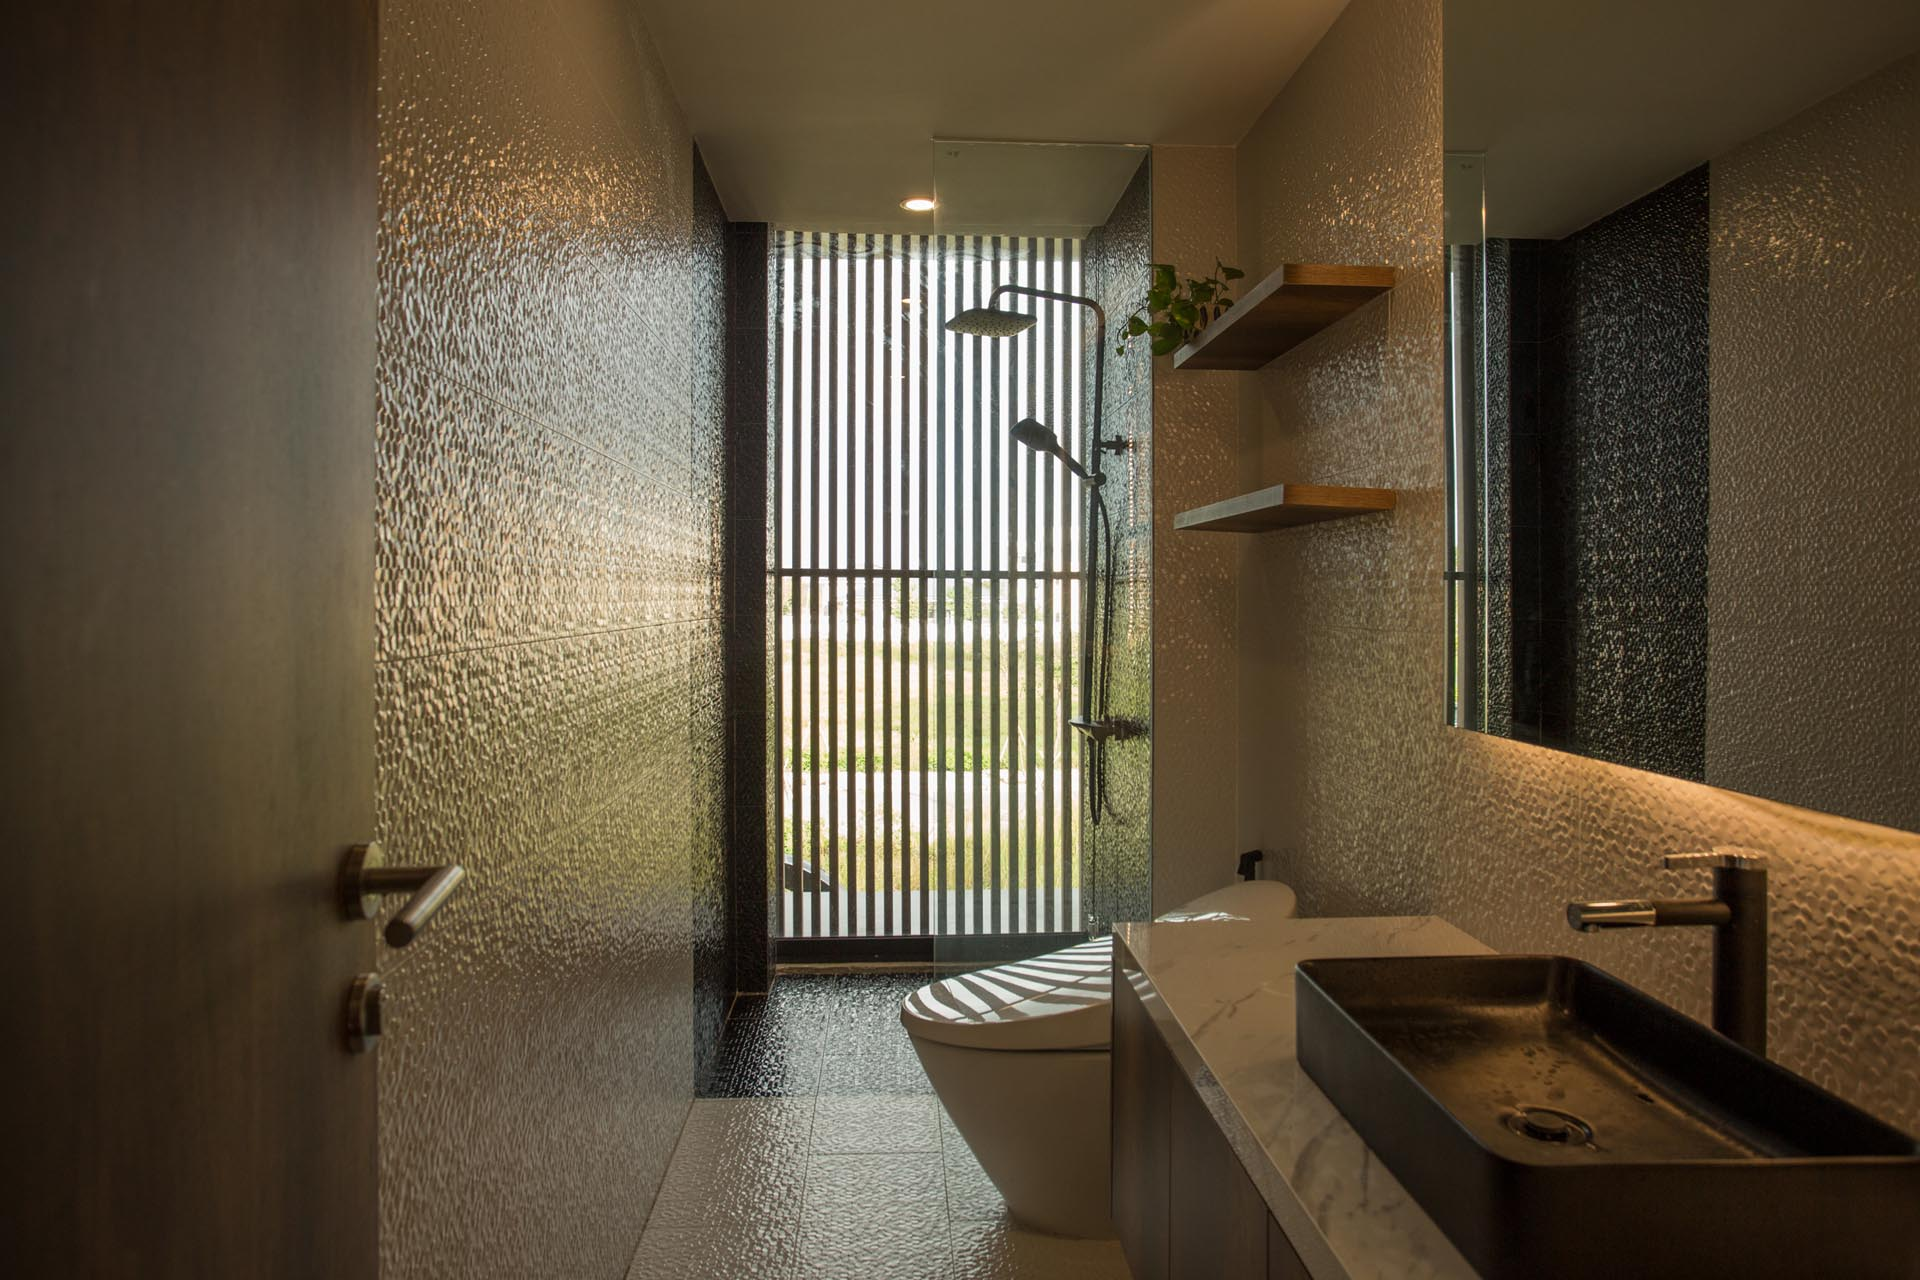 In a modern bathroom, textured tiles cover the walls and floor, while the shower is located by the window providing views of the outdoors.